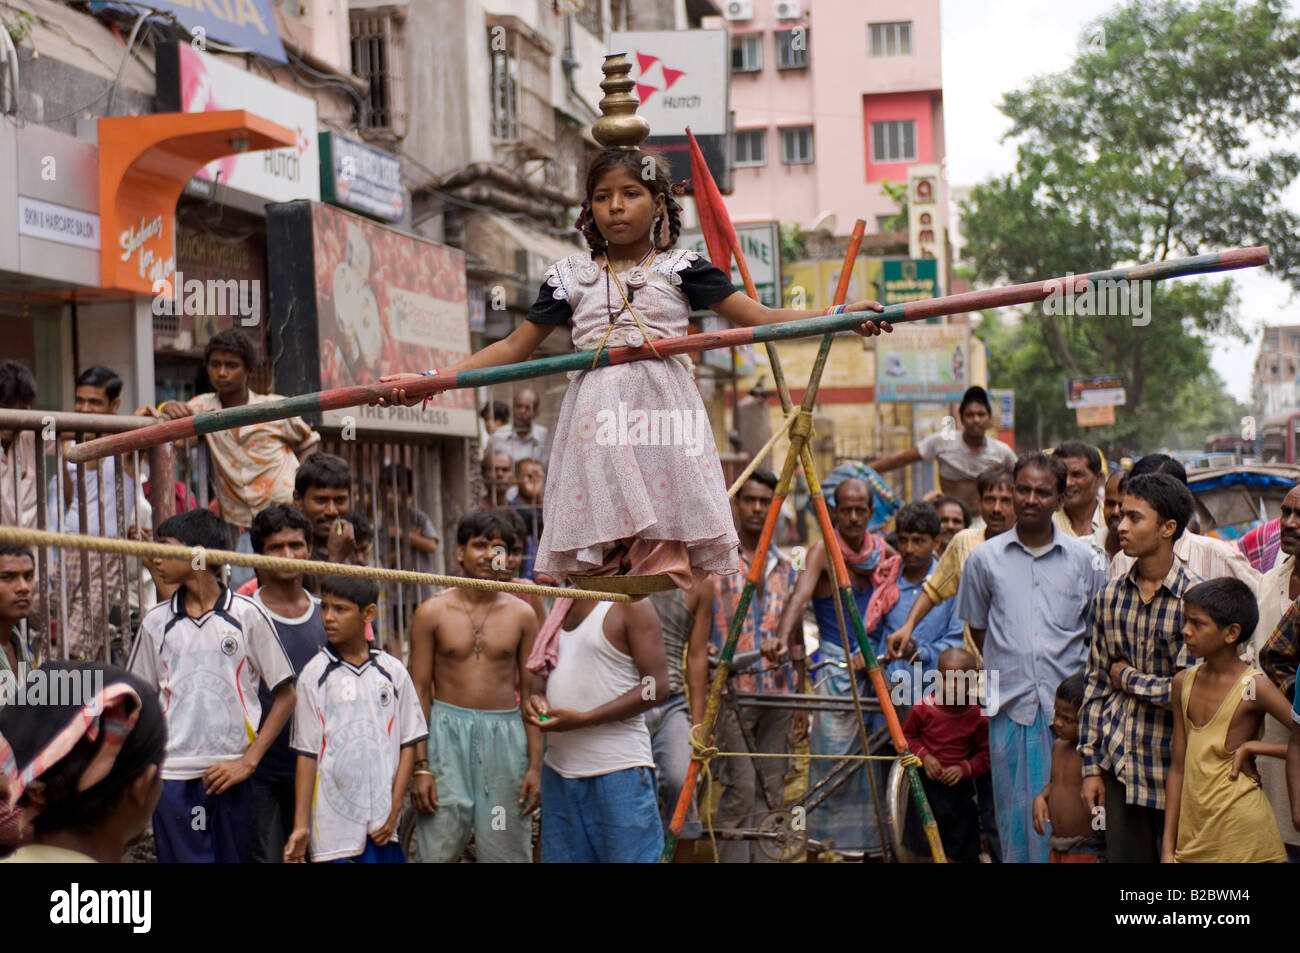 On a main street, a performing family earn their income. Howrah, Hooghly, West Bengal, India - Stock Image